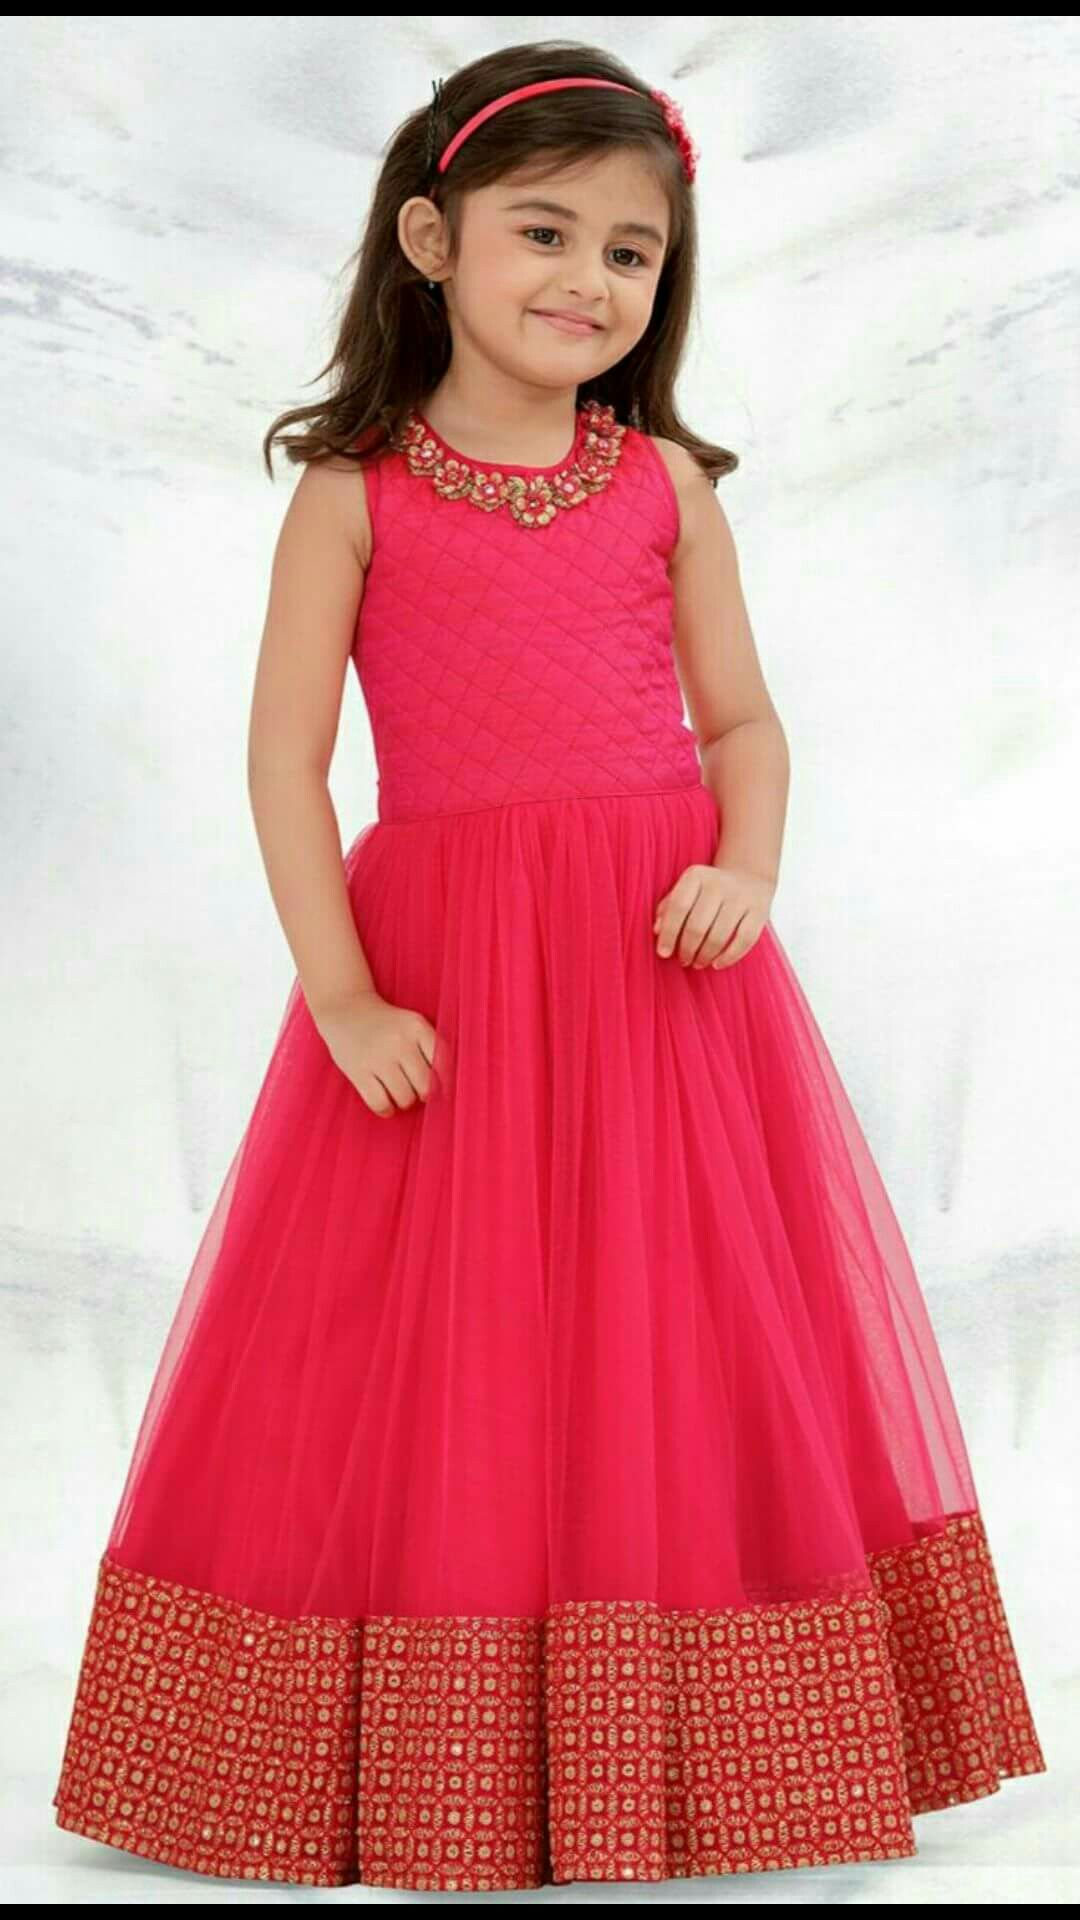 871cb64d7878c3 Frocks | frocks in 2019 | Kids gown, Kids party wear dresses, Gowns ...